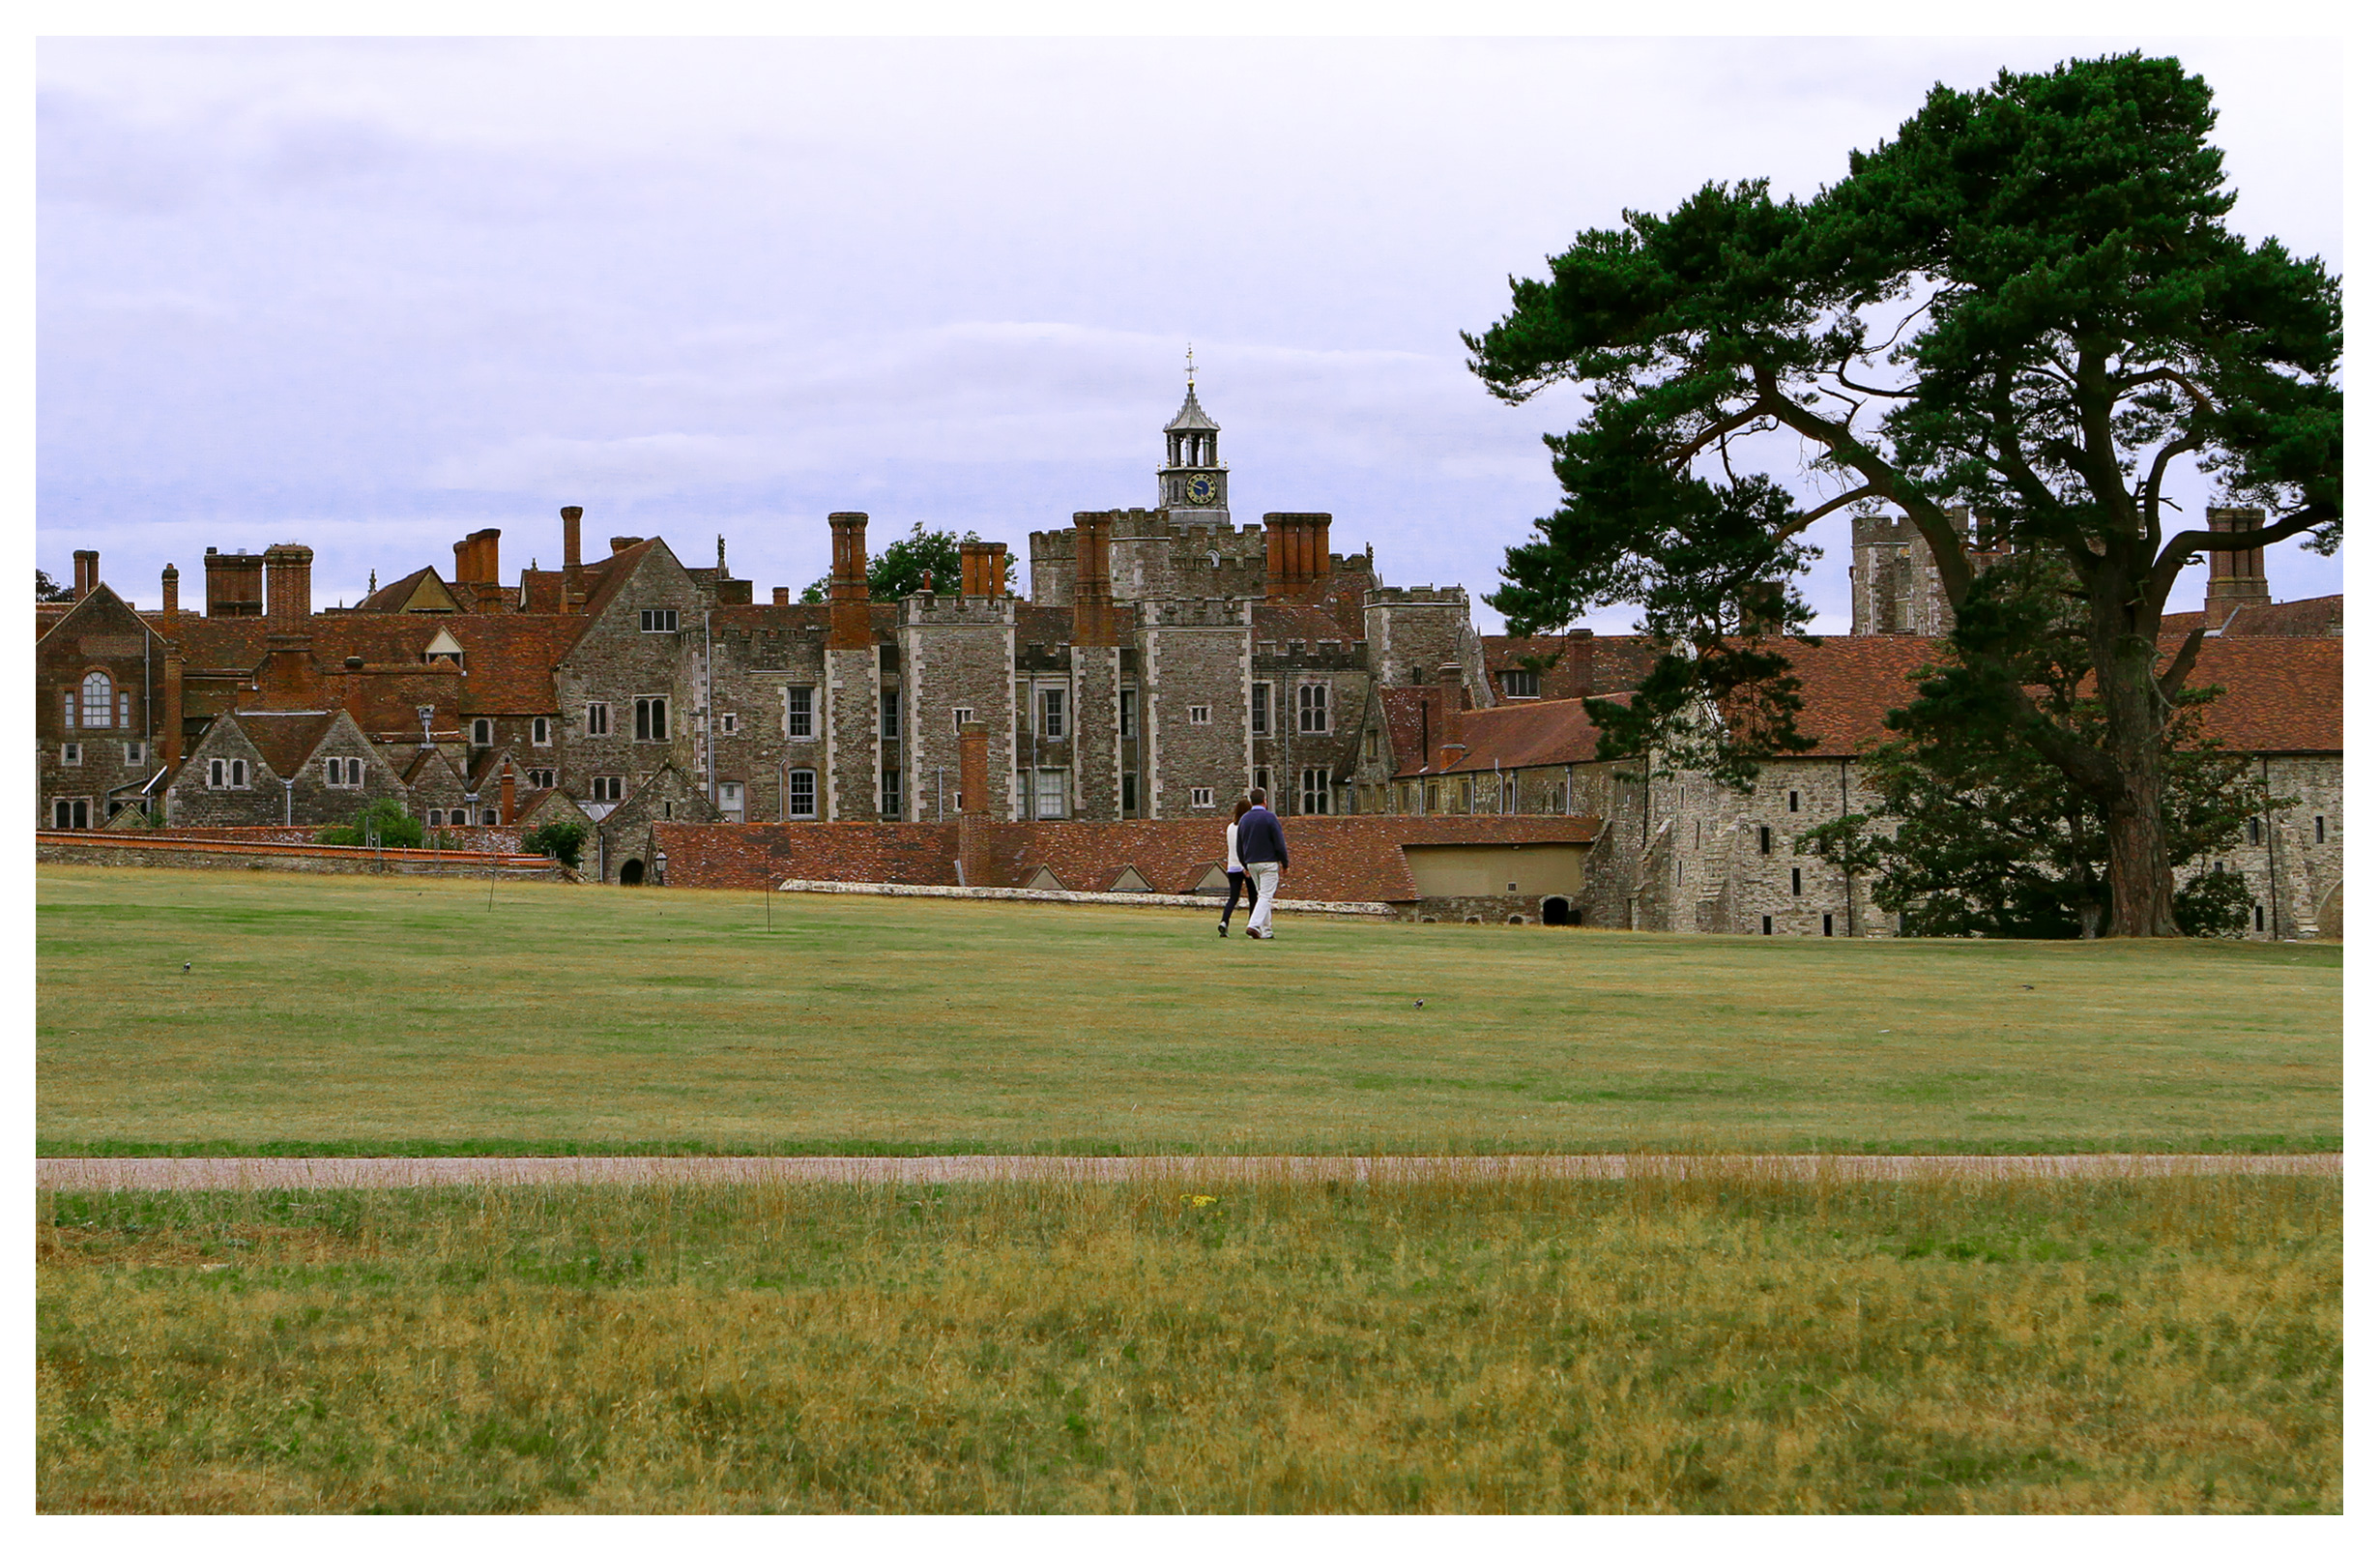 Couple walking on the grounds of Knole Park, Sevenoaks, Kent, England, with Knole House in the background